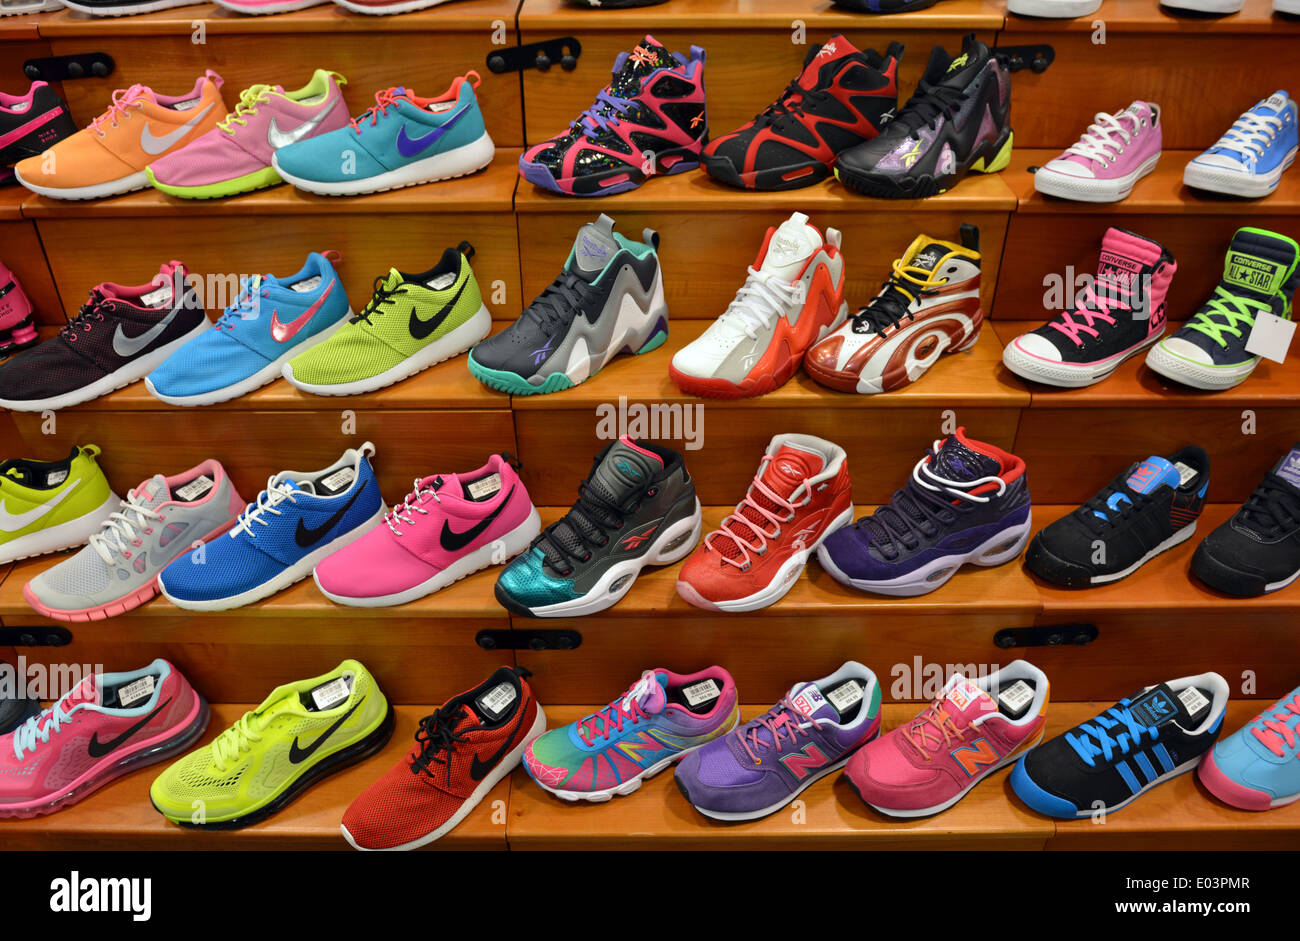 Athletic Shoe Store Stock Photos & Athletic Shoe Store Stock